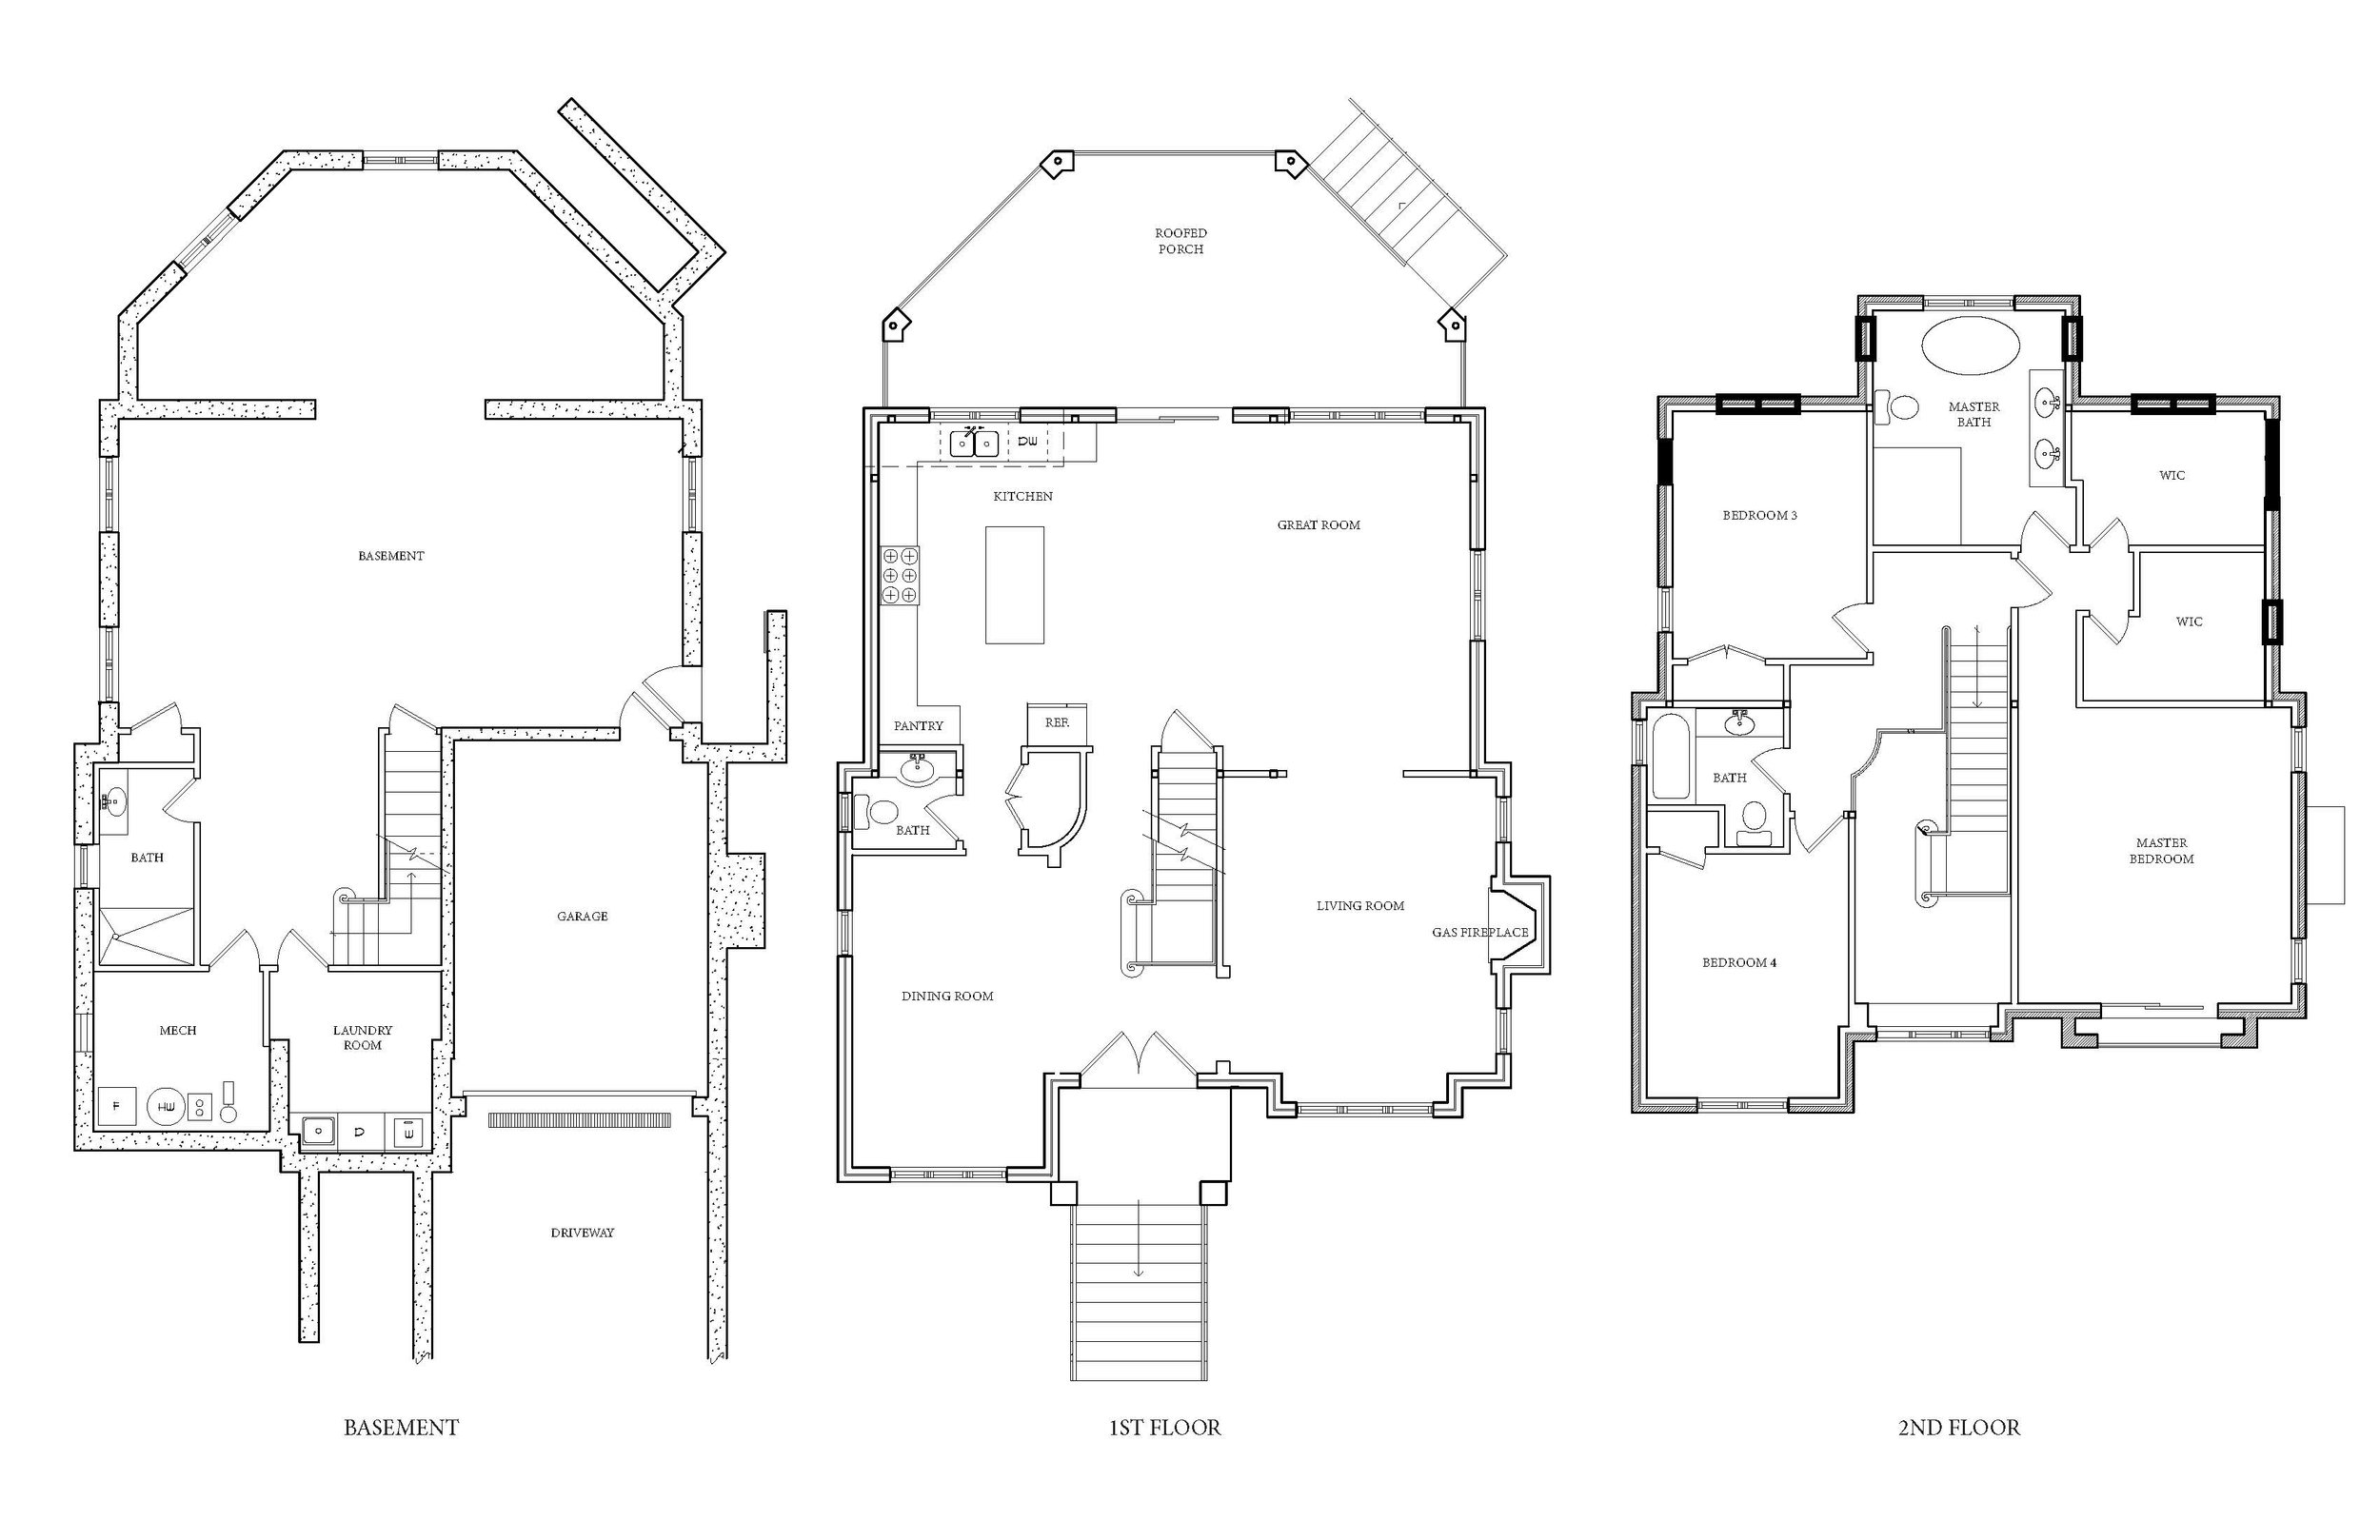 150-67 6th Ave Floorplan.jpg